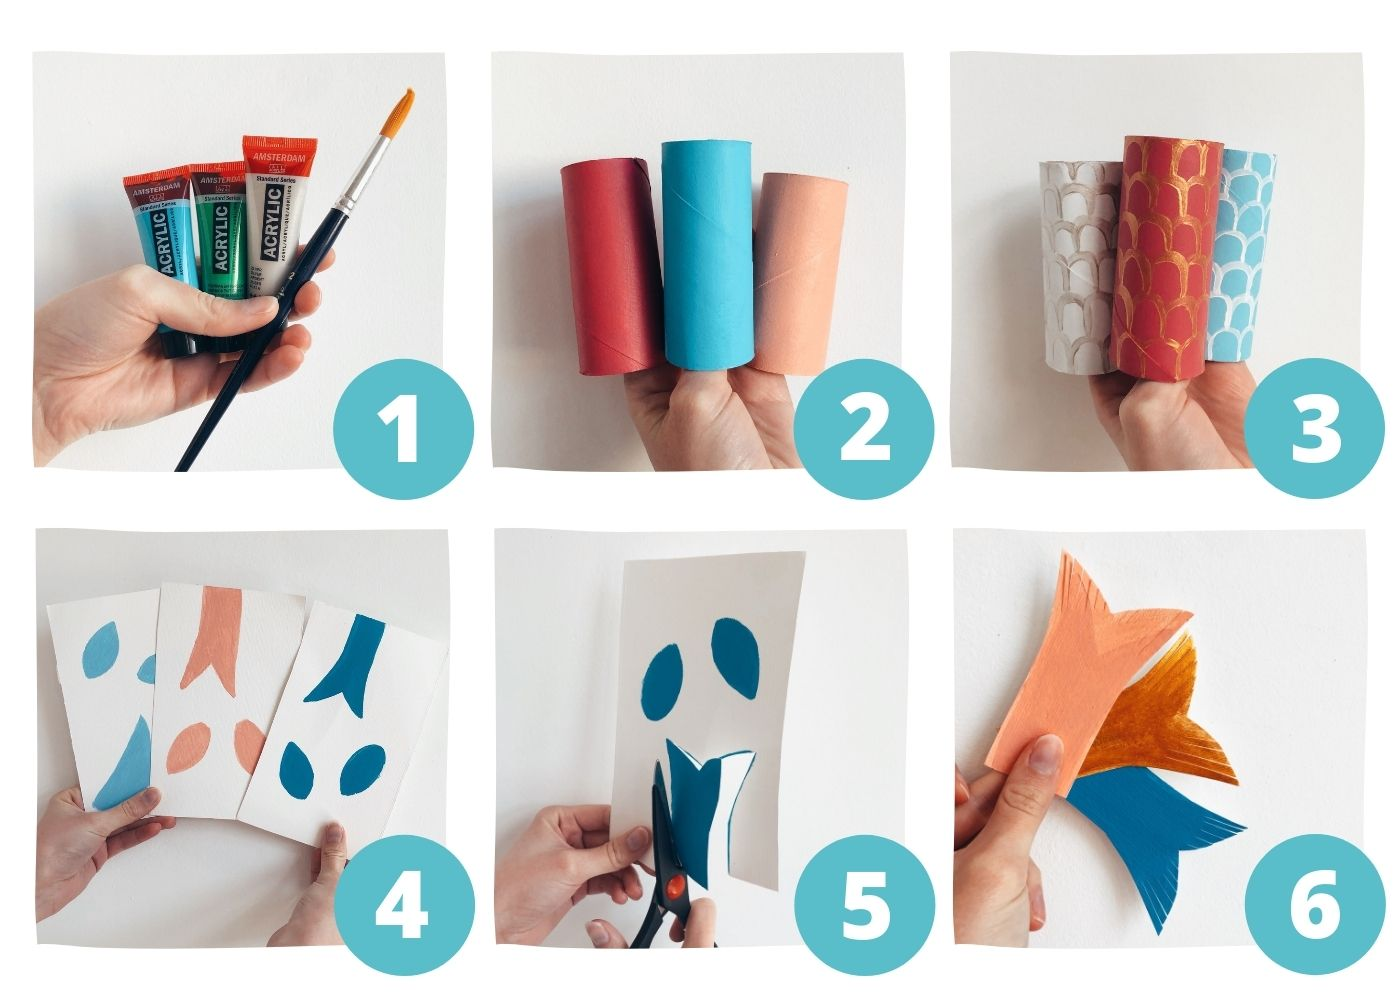 Koi Fish Toilet Paper Roll Crafts Steps1-6